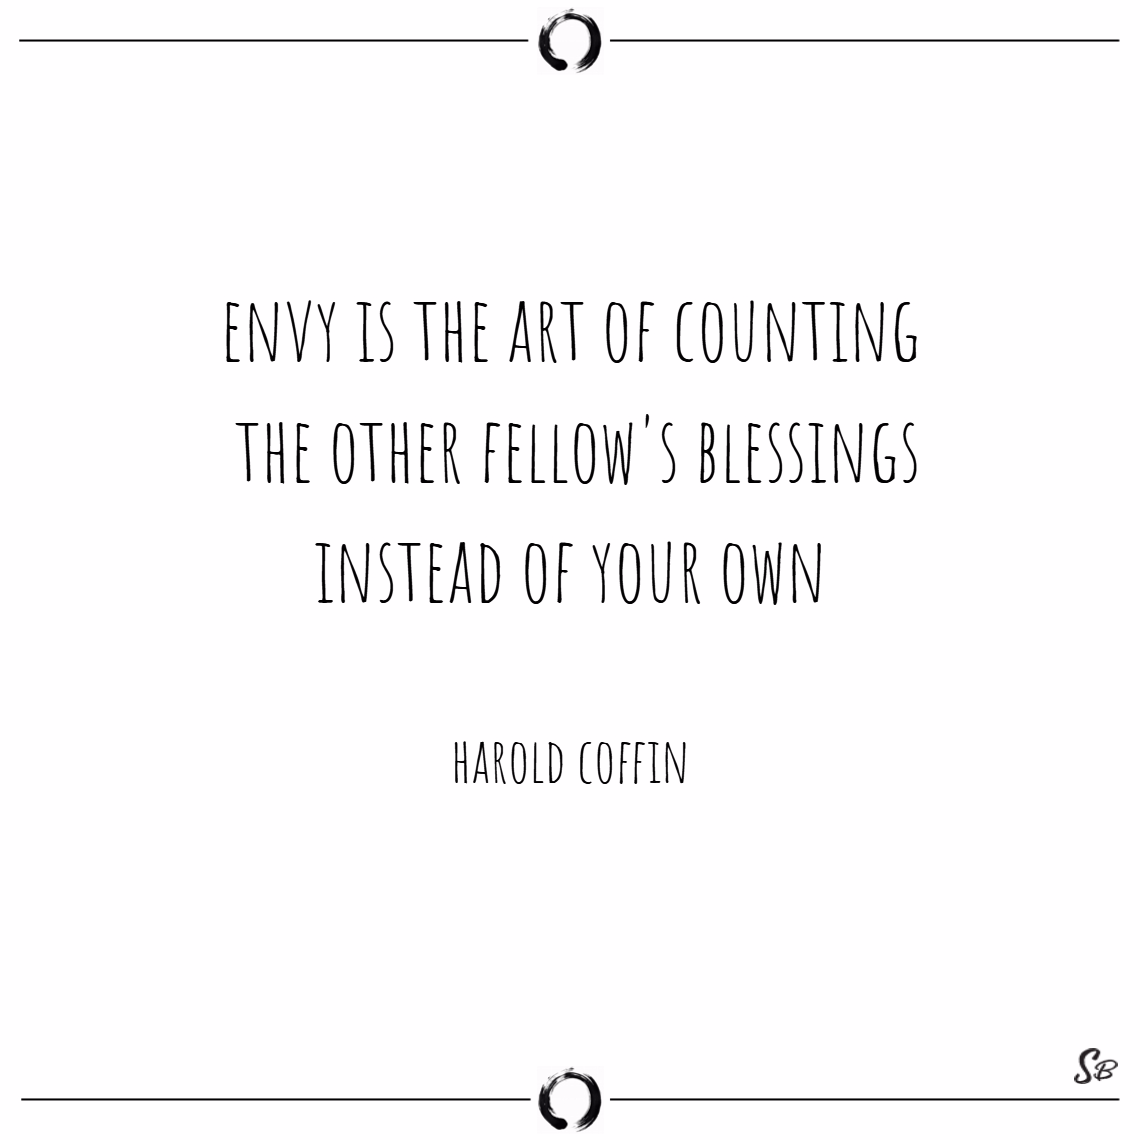 Envy is the art of counting the other fellow's blessings instead of your own. – harold coffin Envy quotes